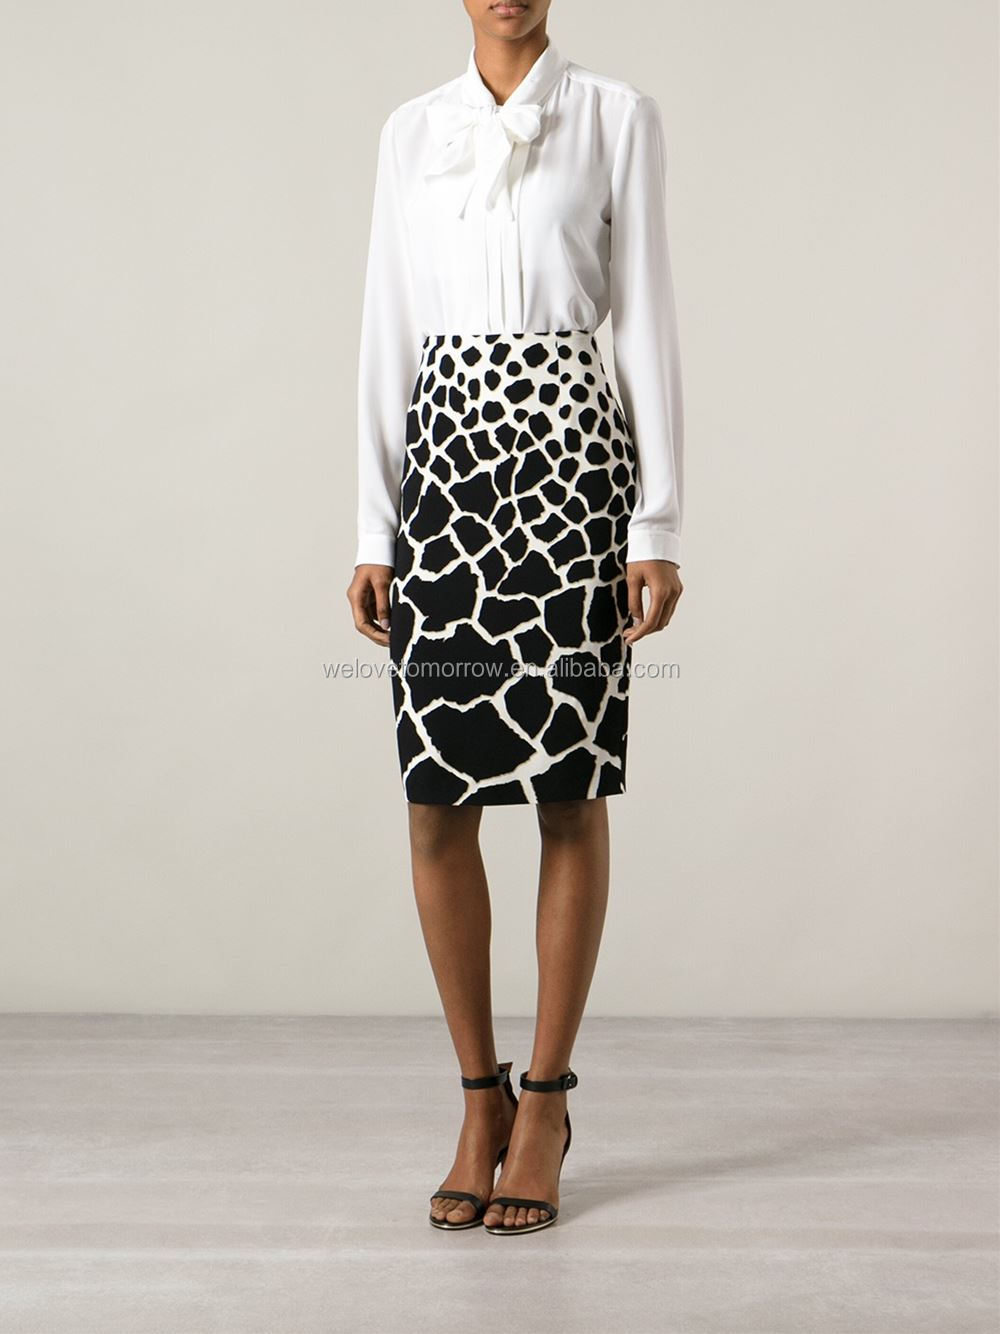 Black and white print pencil leopard skirt,models straight skirt, sample office uniform designs (TW0074K)